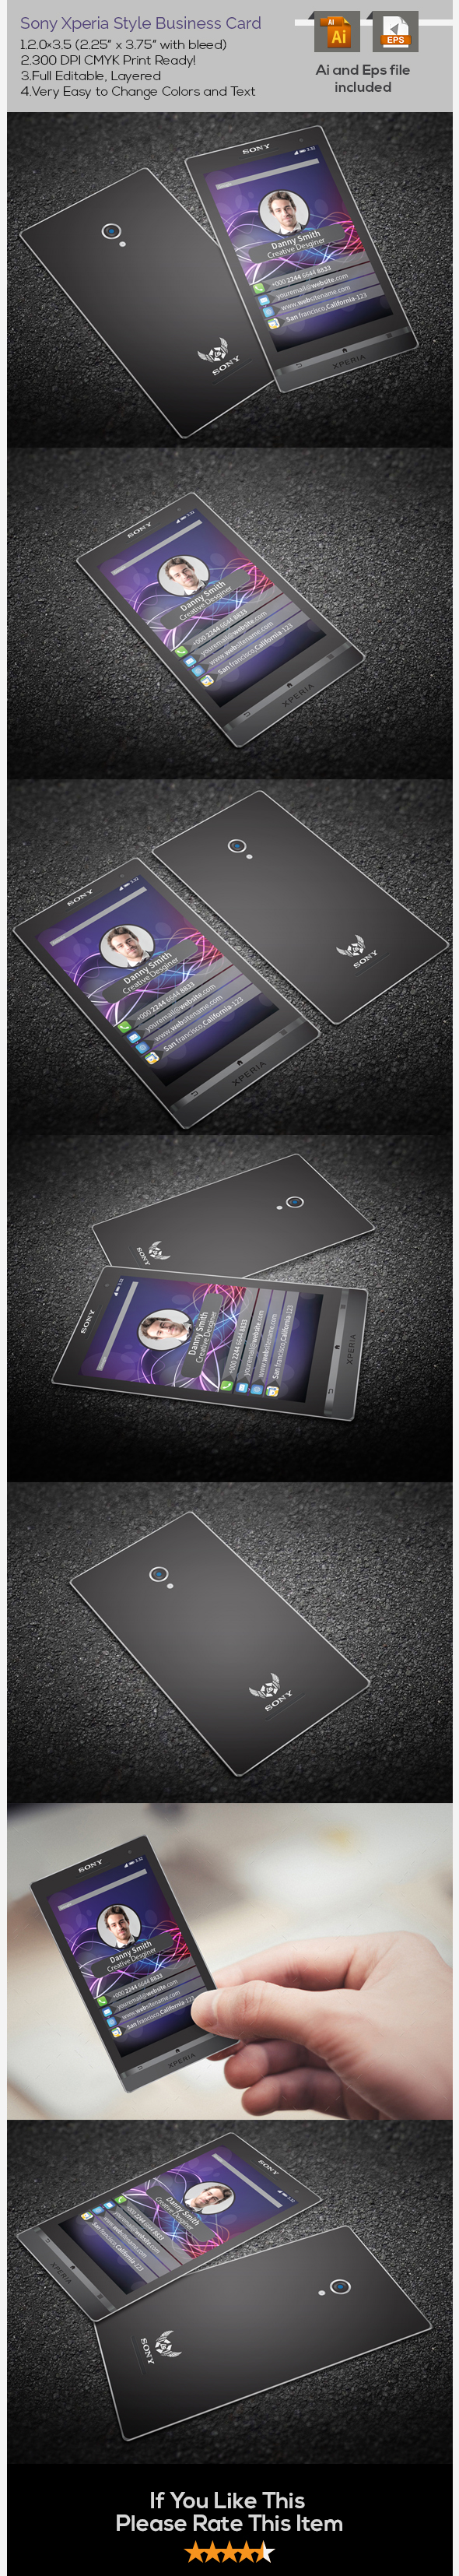 Sony Xperia Style Business Card on Behance